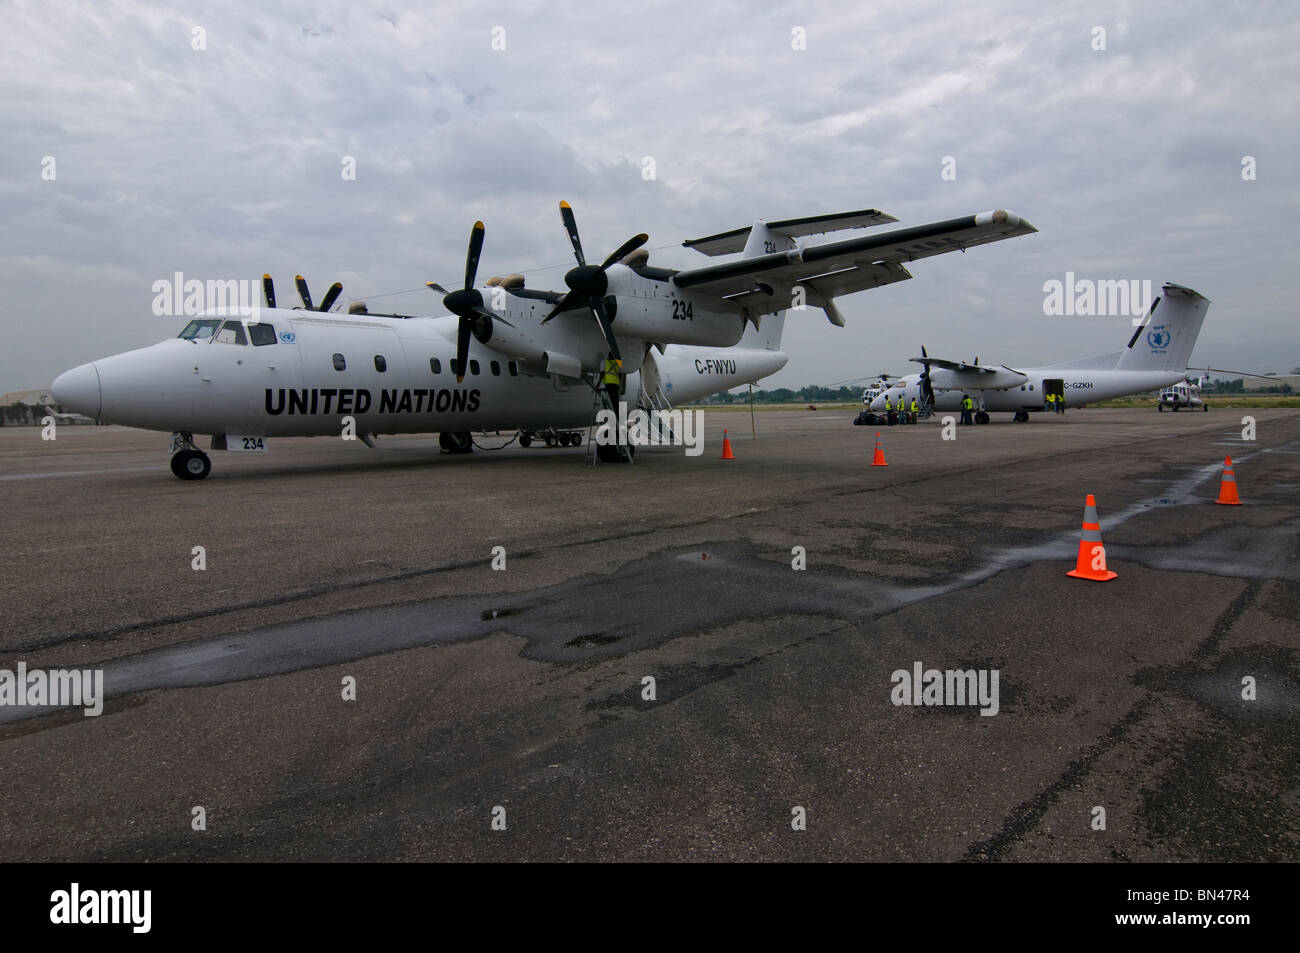 A turboprop-powered de Havilland Canada DHC-7 airplane, popularly known as the Dash 7 of the United Nations Humanitarian - Stock Image